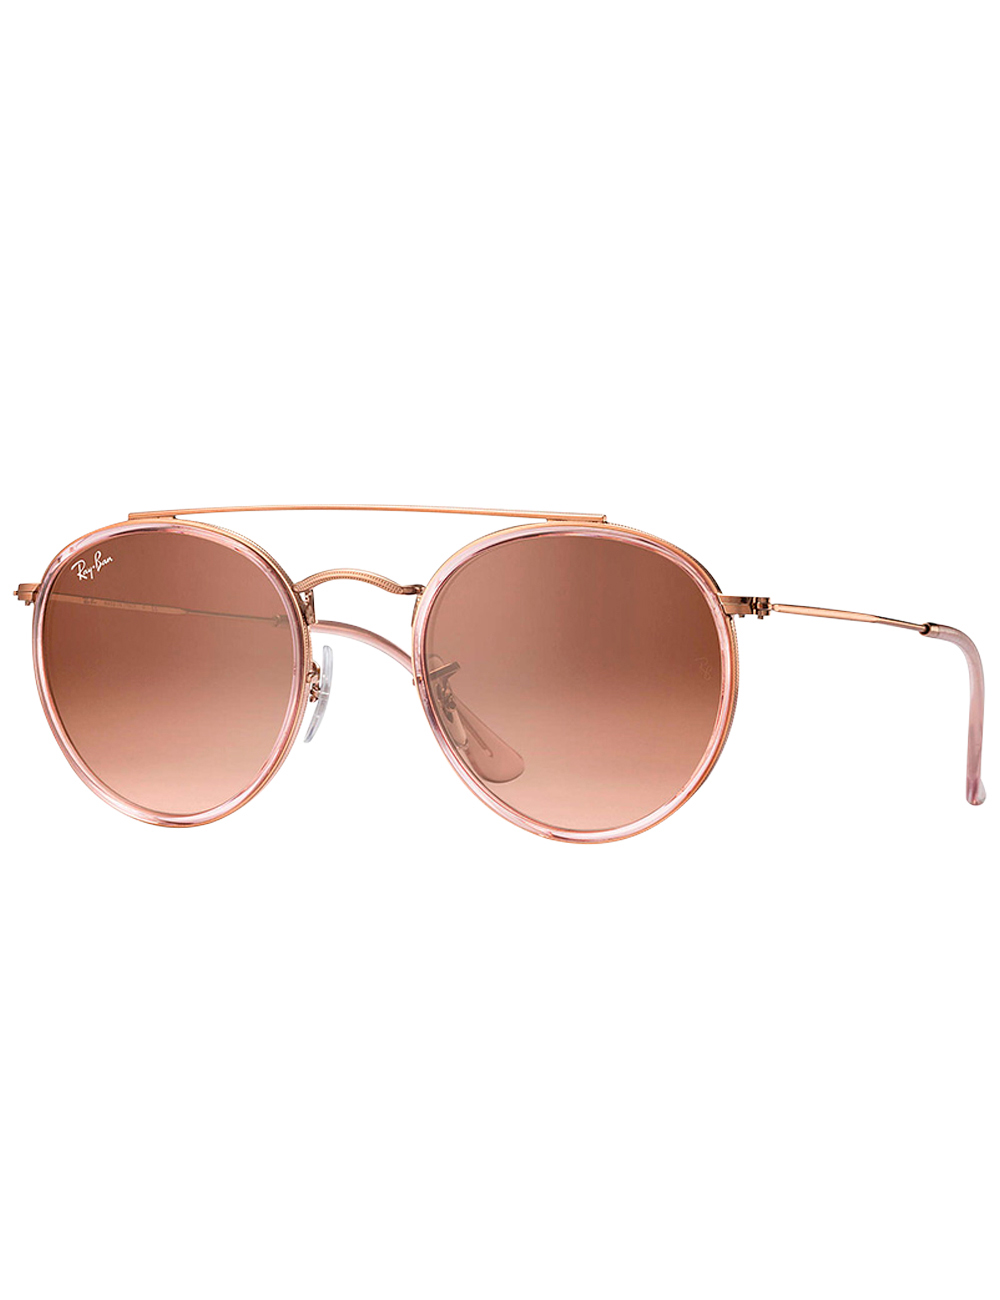 ray ban lunettes femme rose